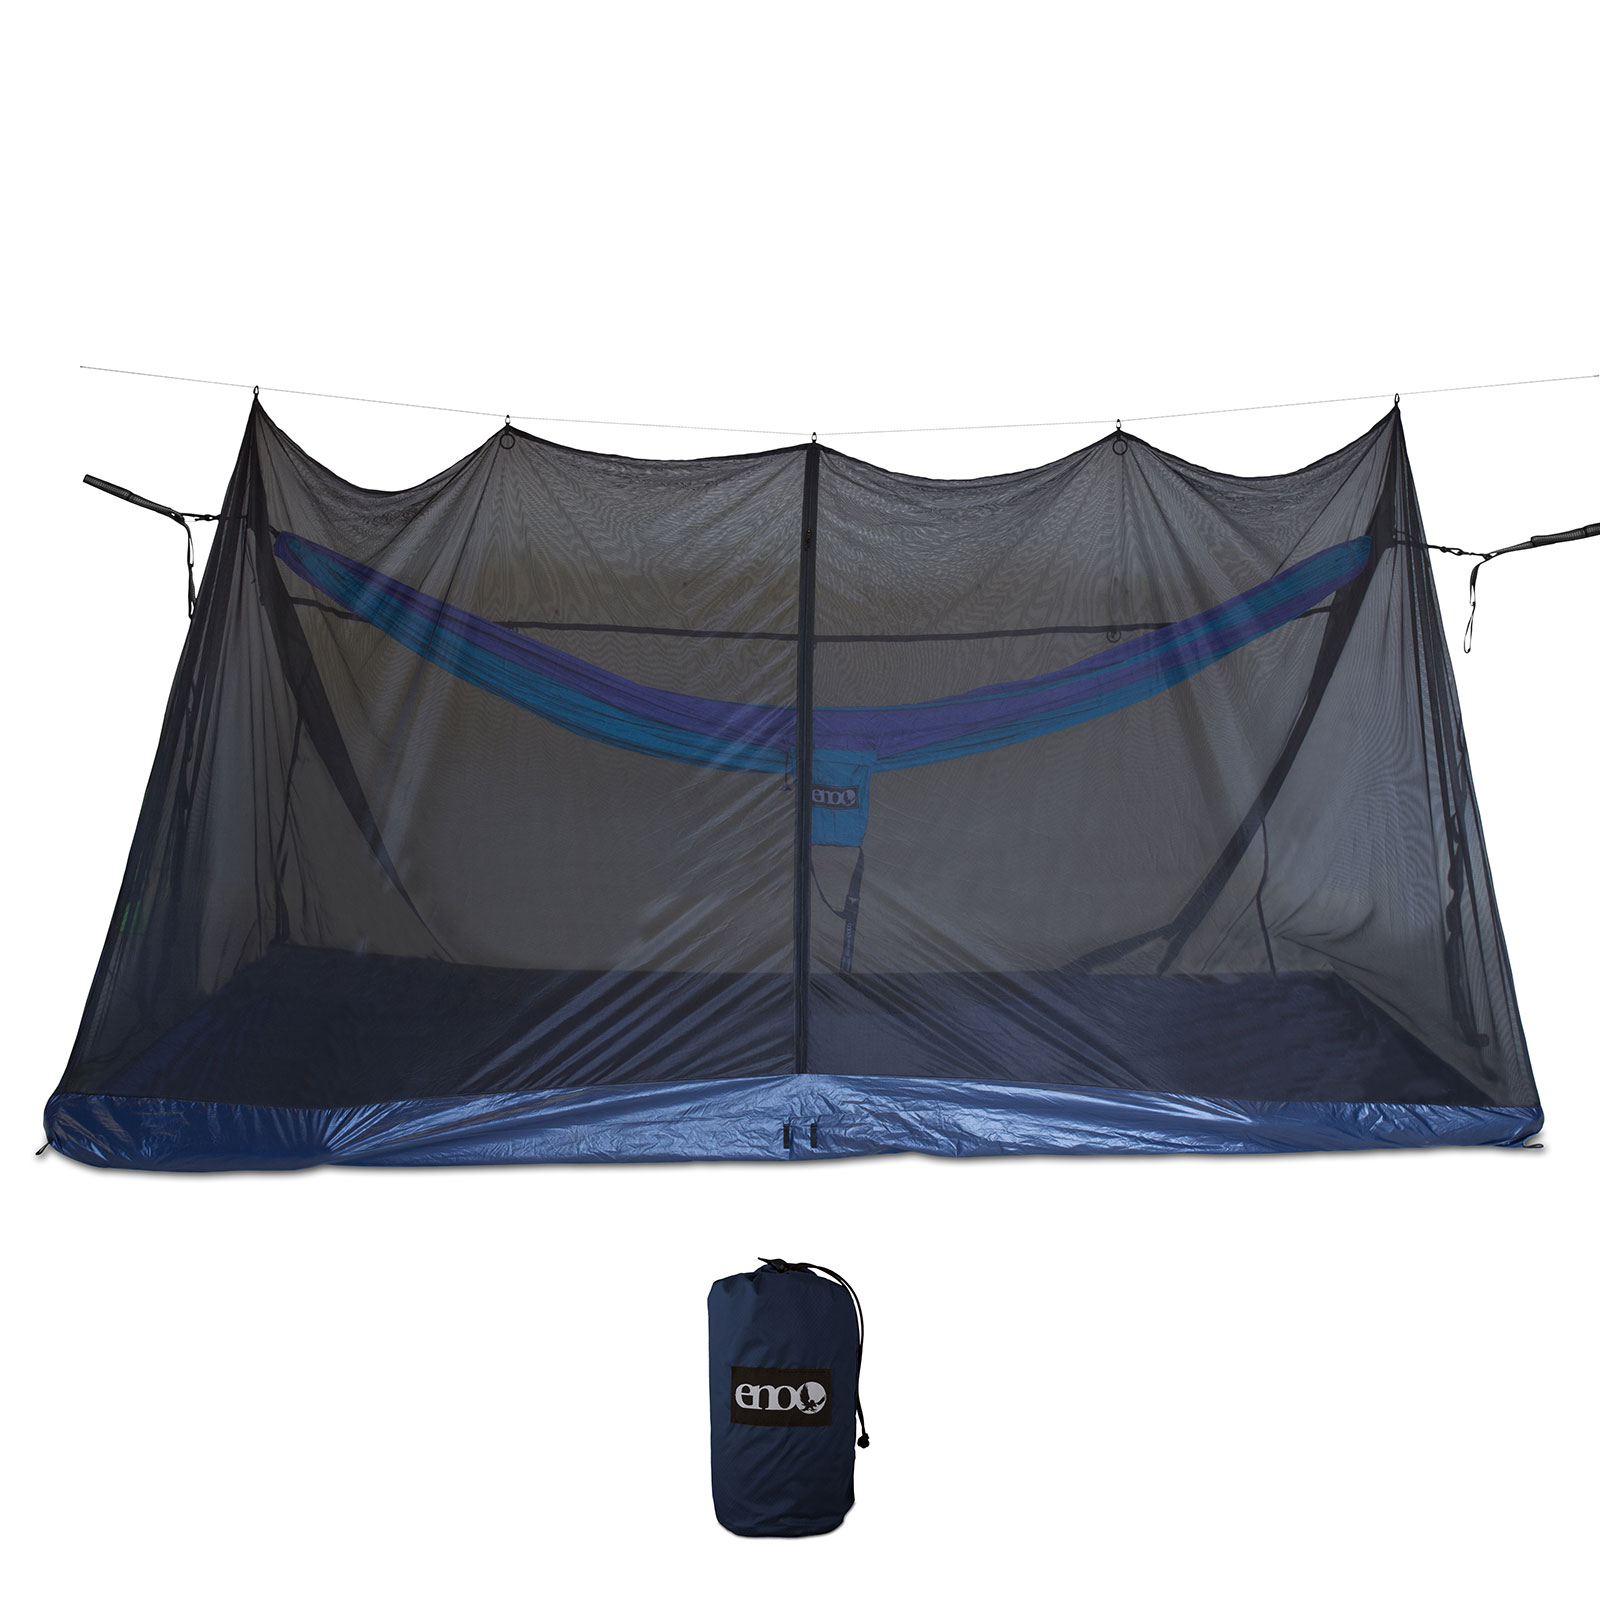 Eno Guardian Base Camp Bug Net Insect Netting Outdoor